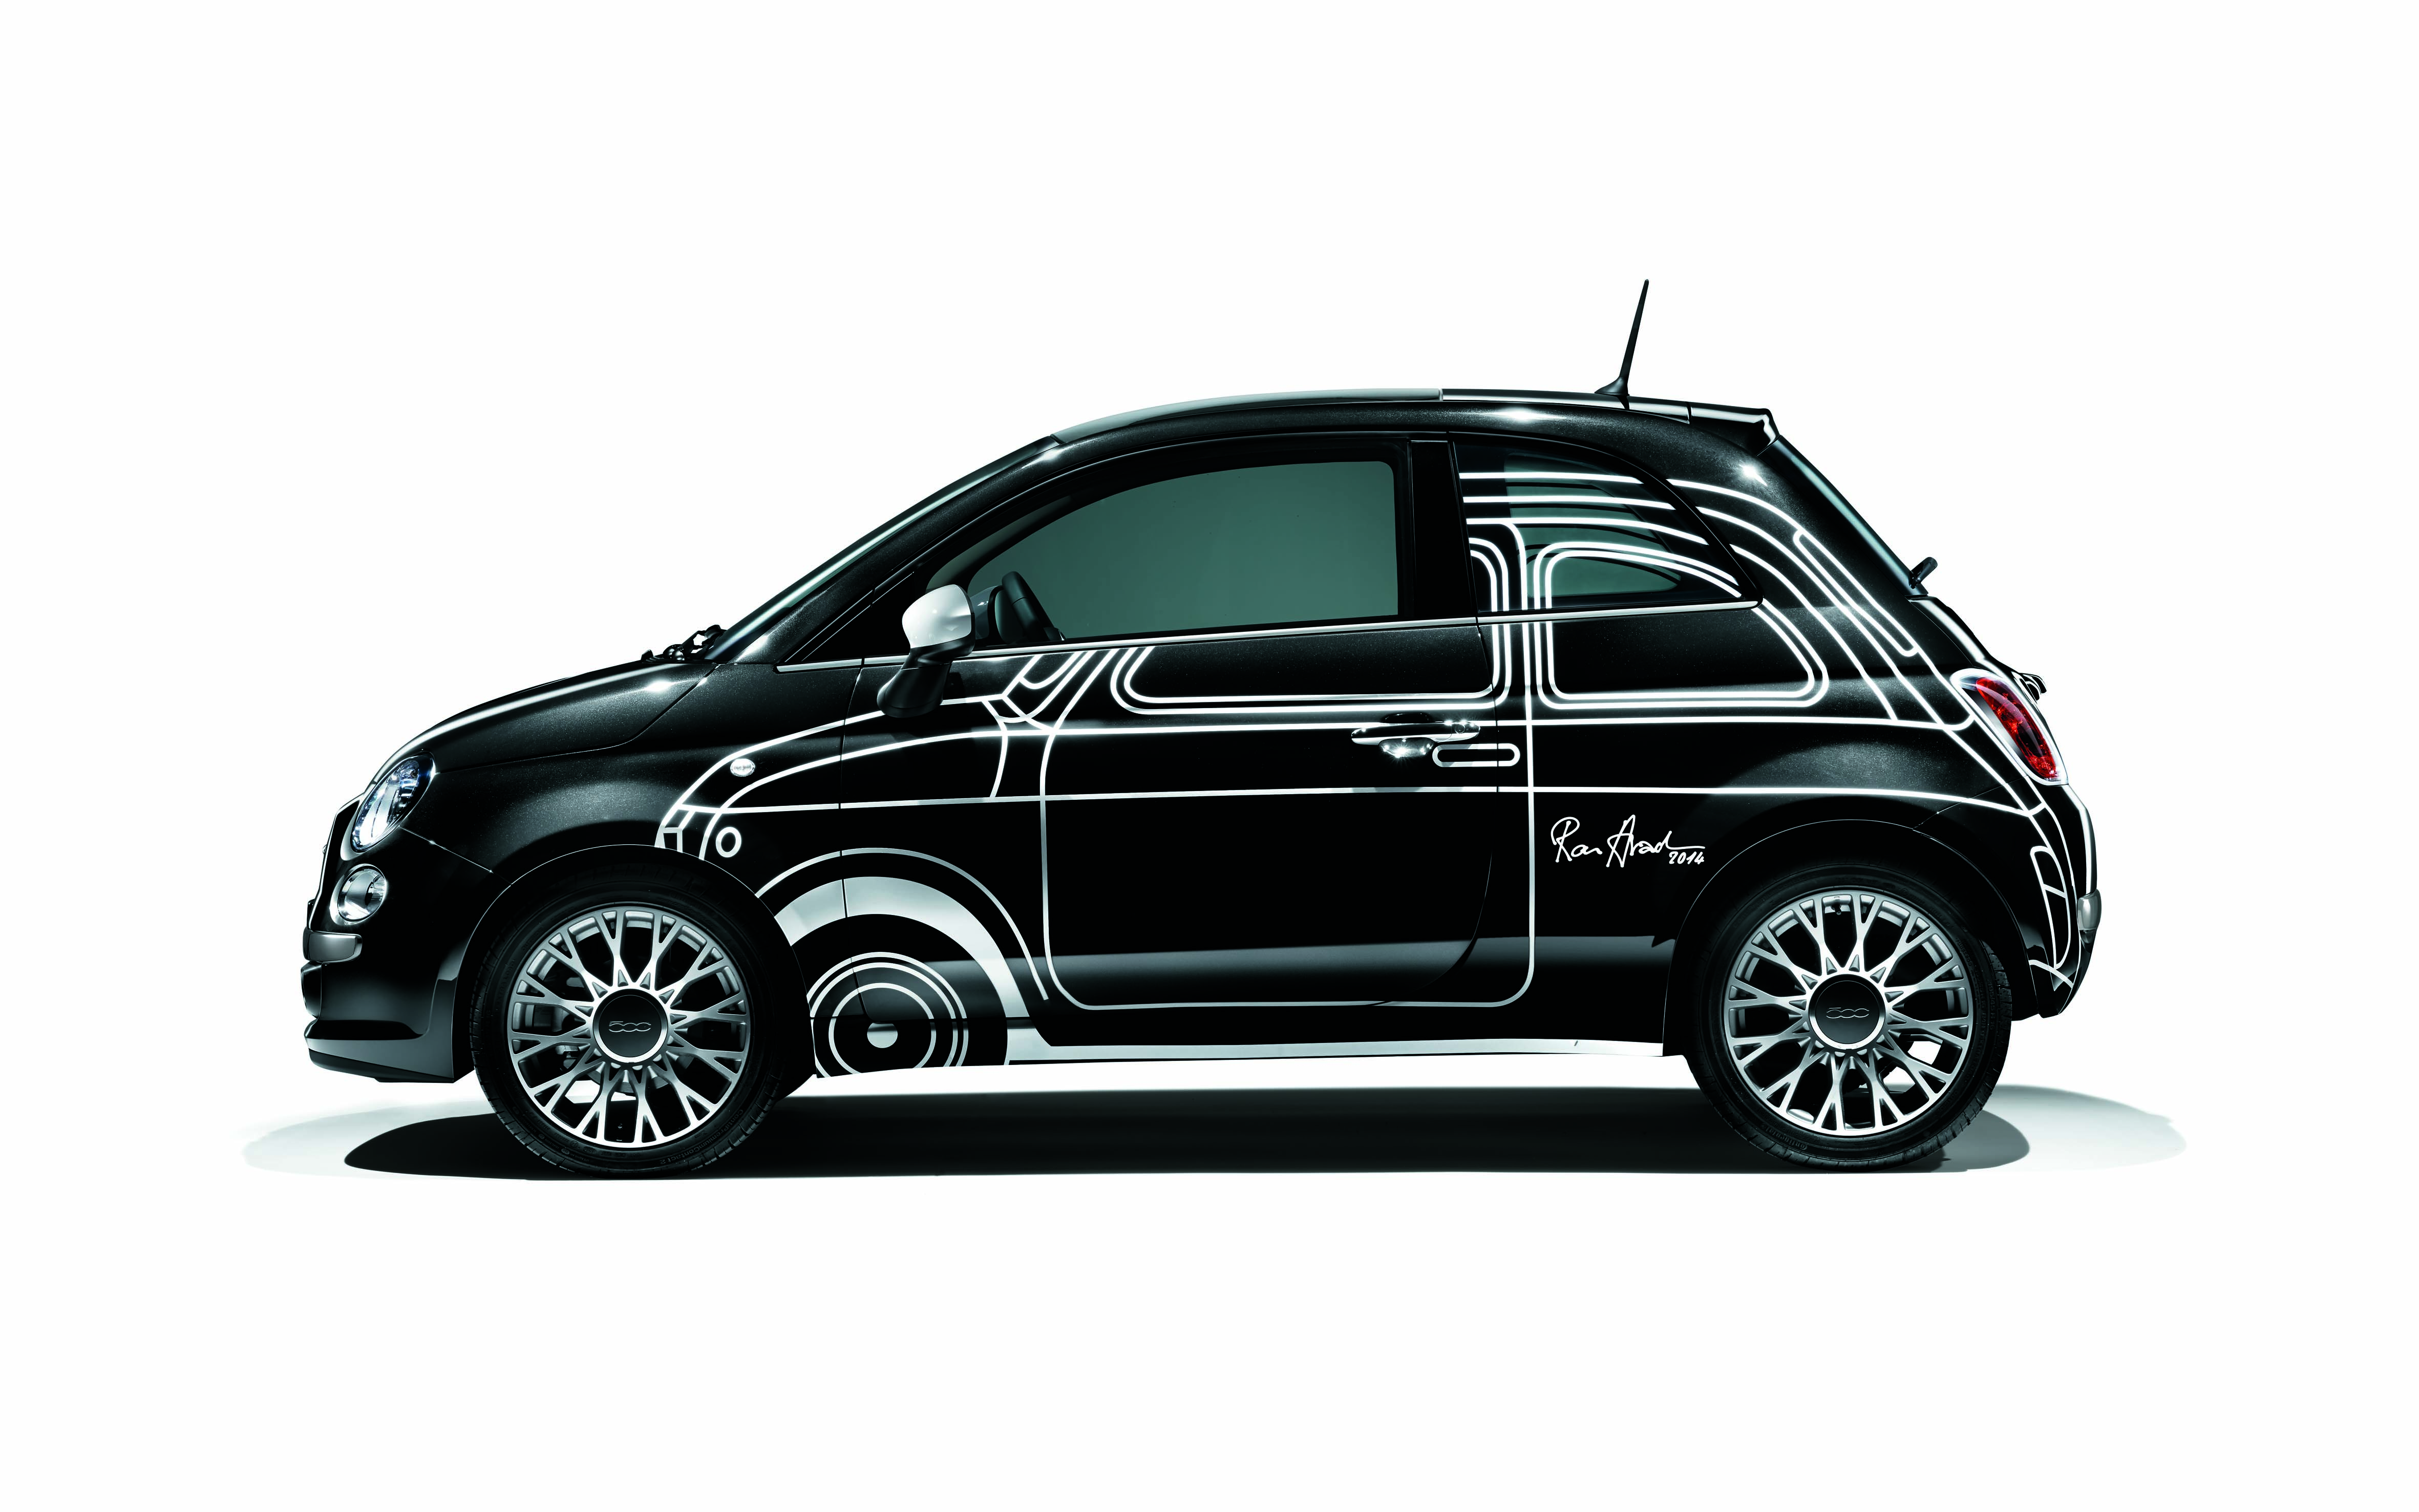 fiat 500 ron arad edition weltpremiere in paris pressemitteilungen fiat group automobiles. Black Bedroom Furniture Sets. Home Design Ideas